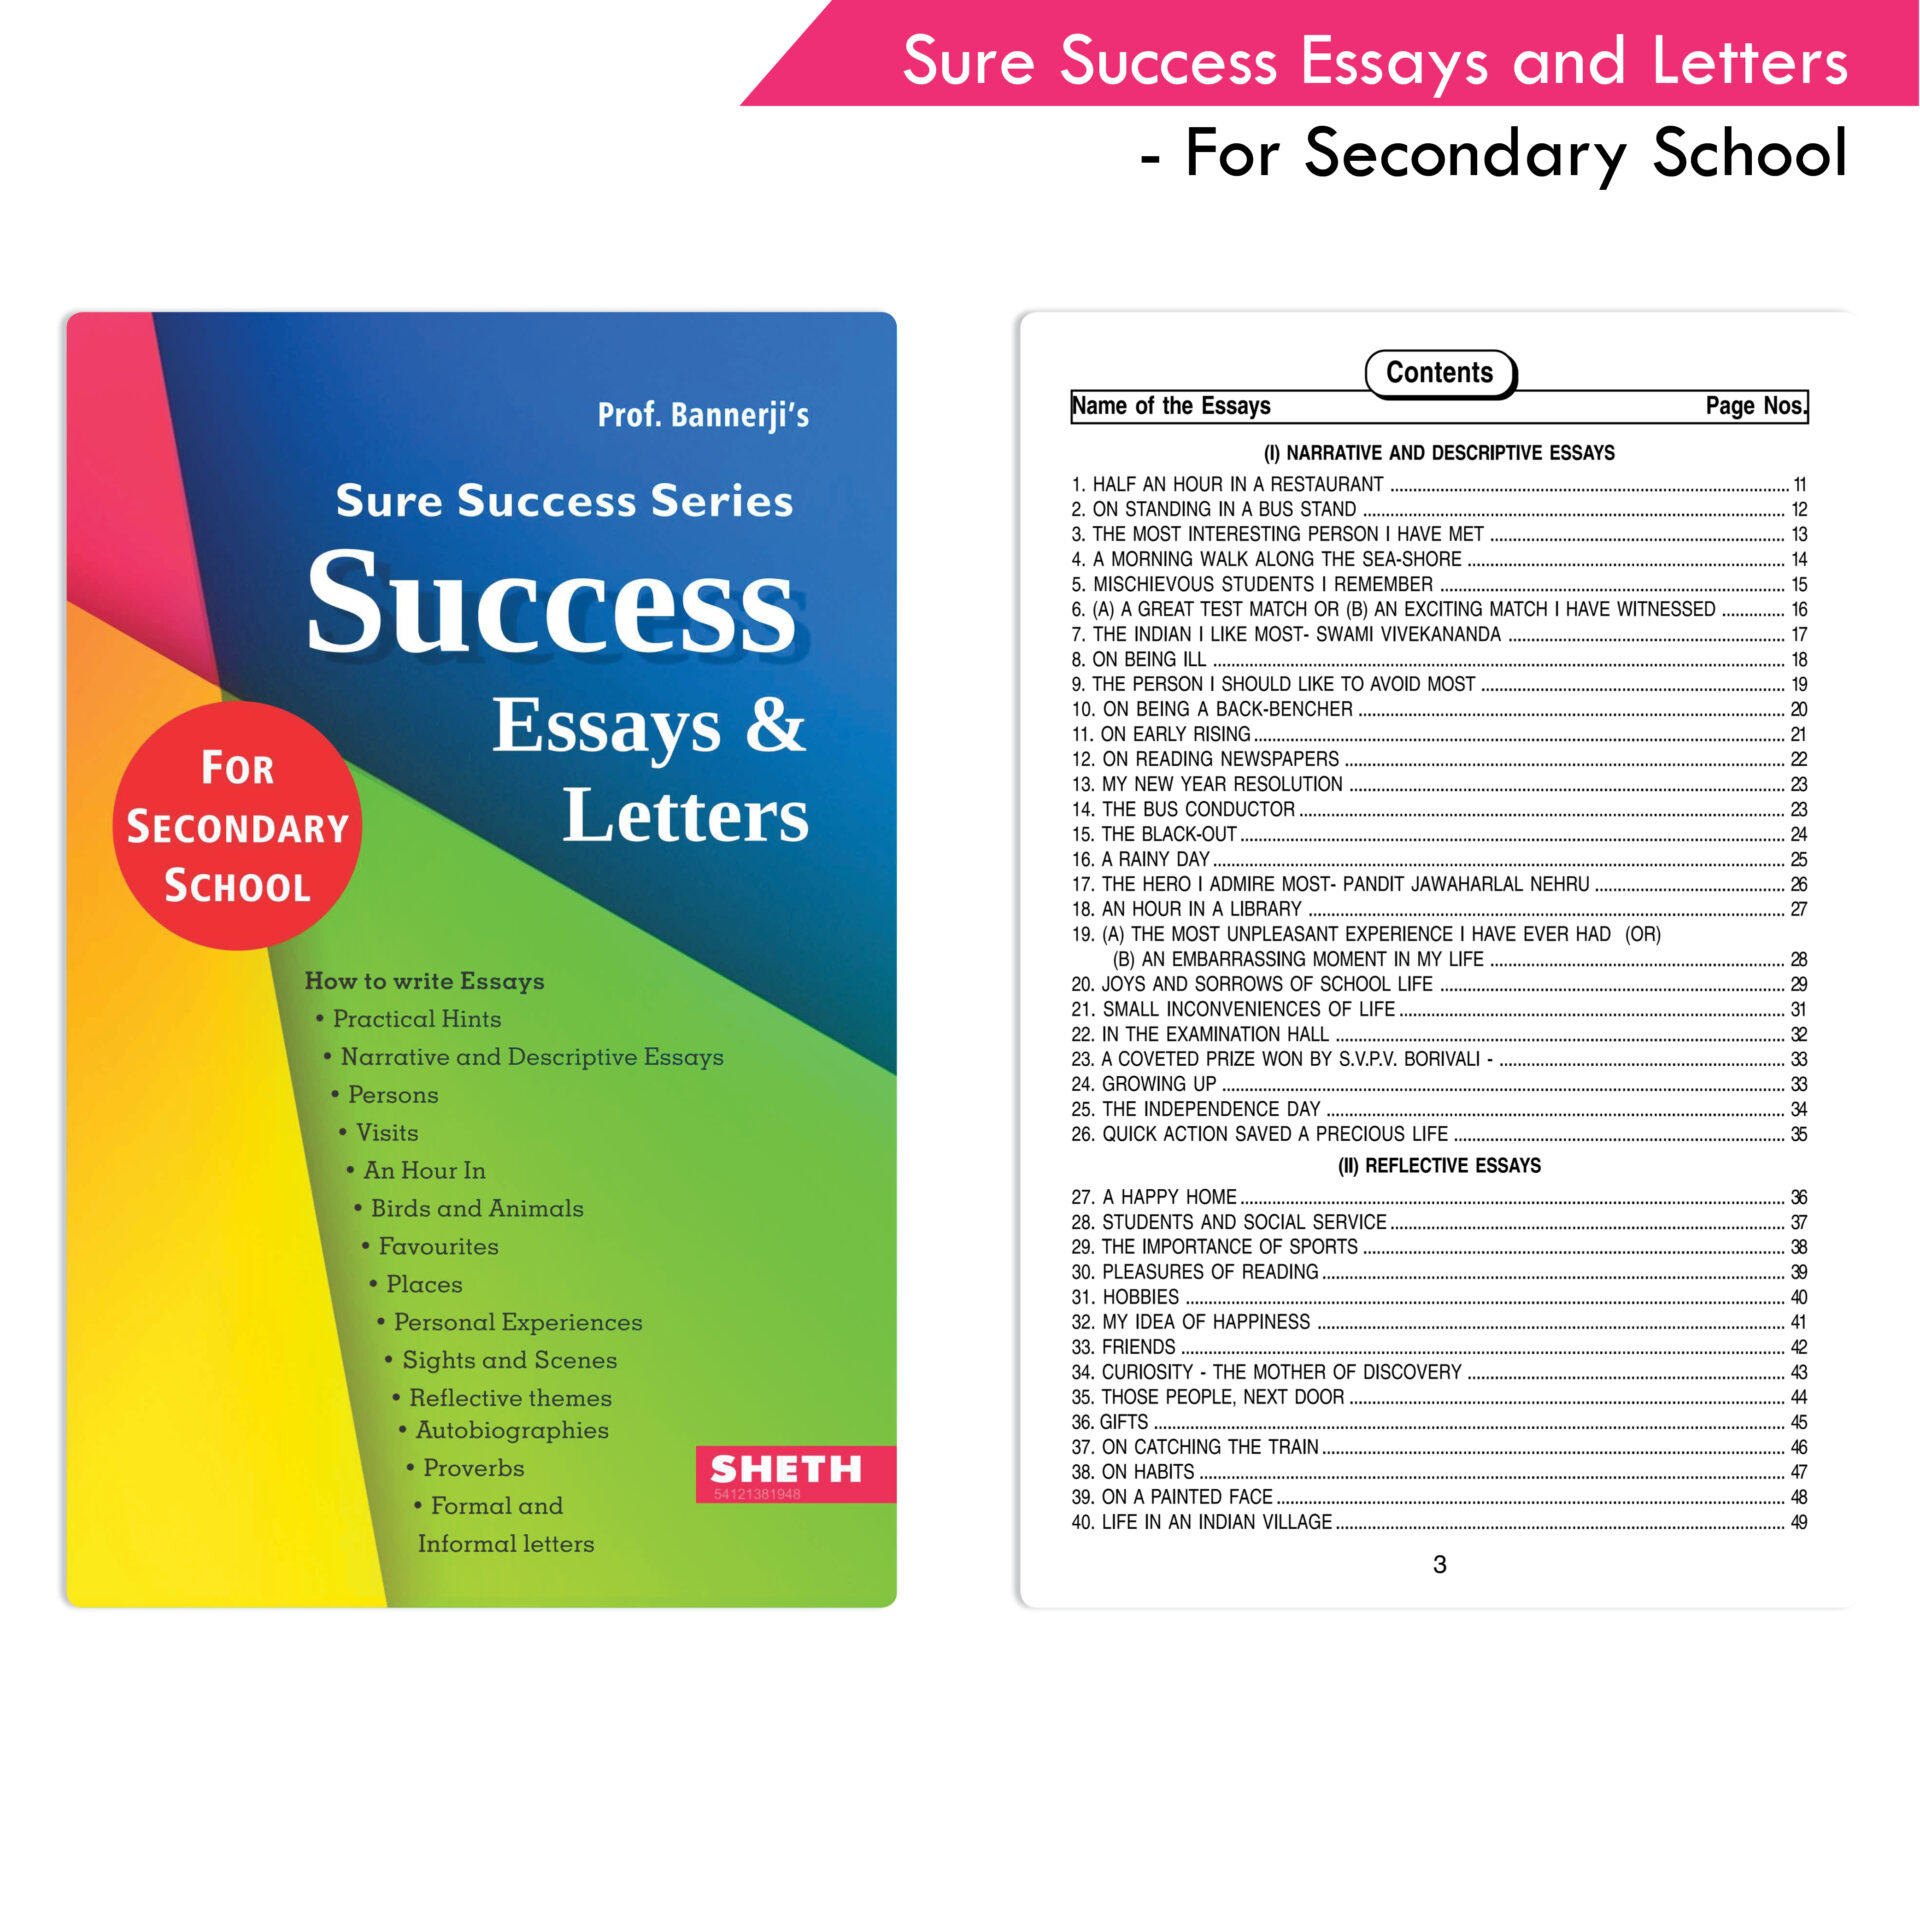 Sure Success Essays and Letters For Secondary School 1